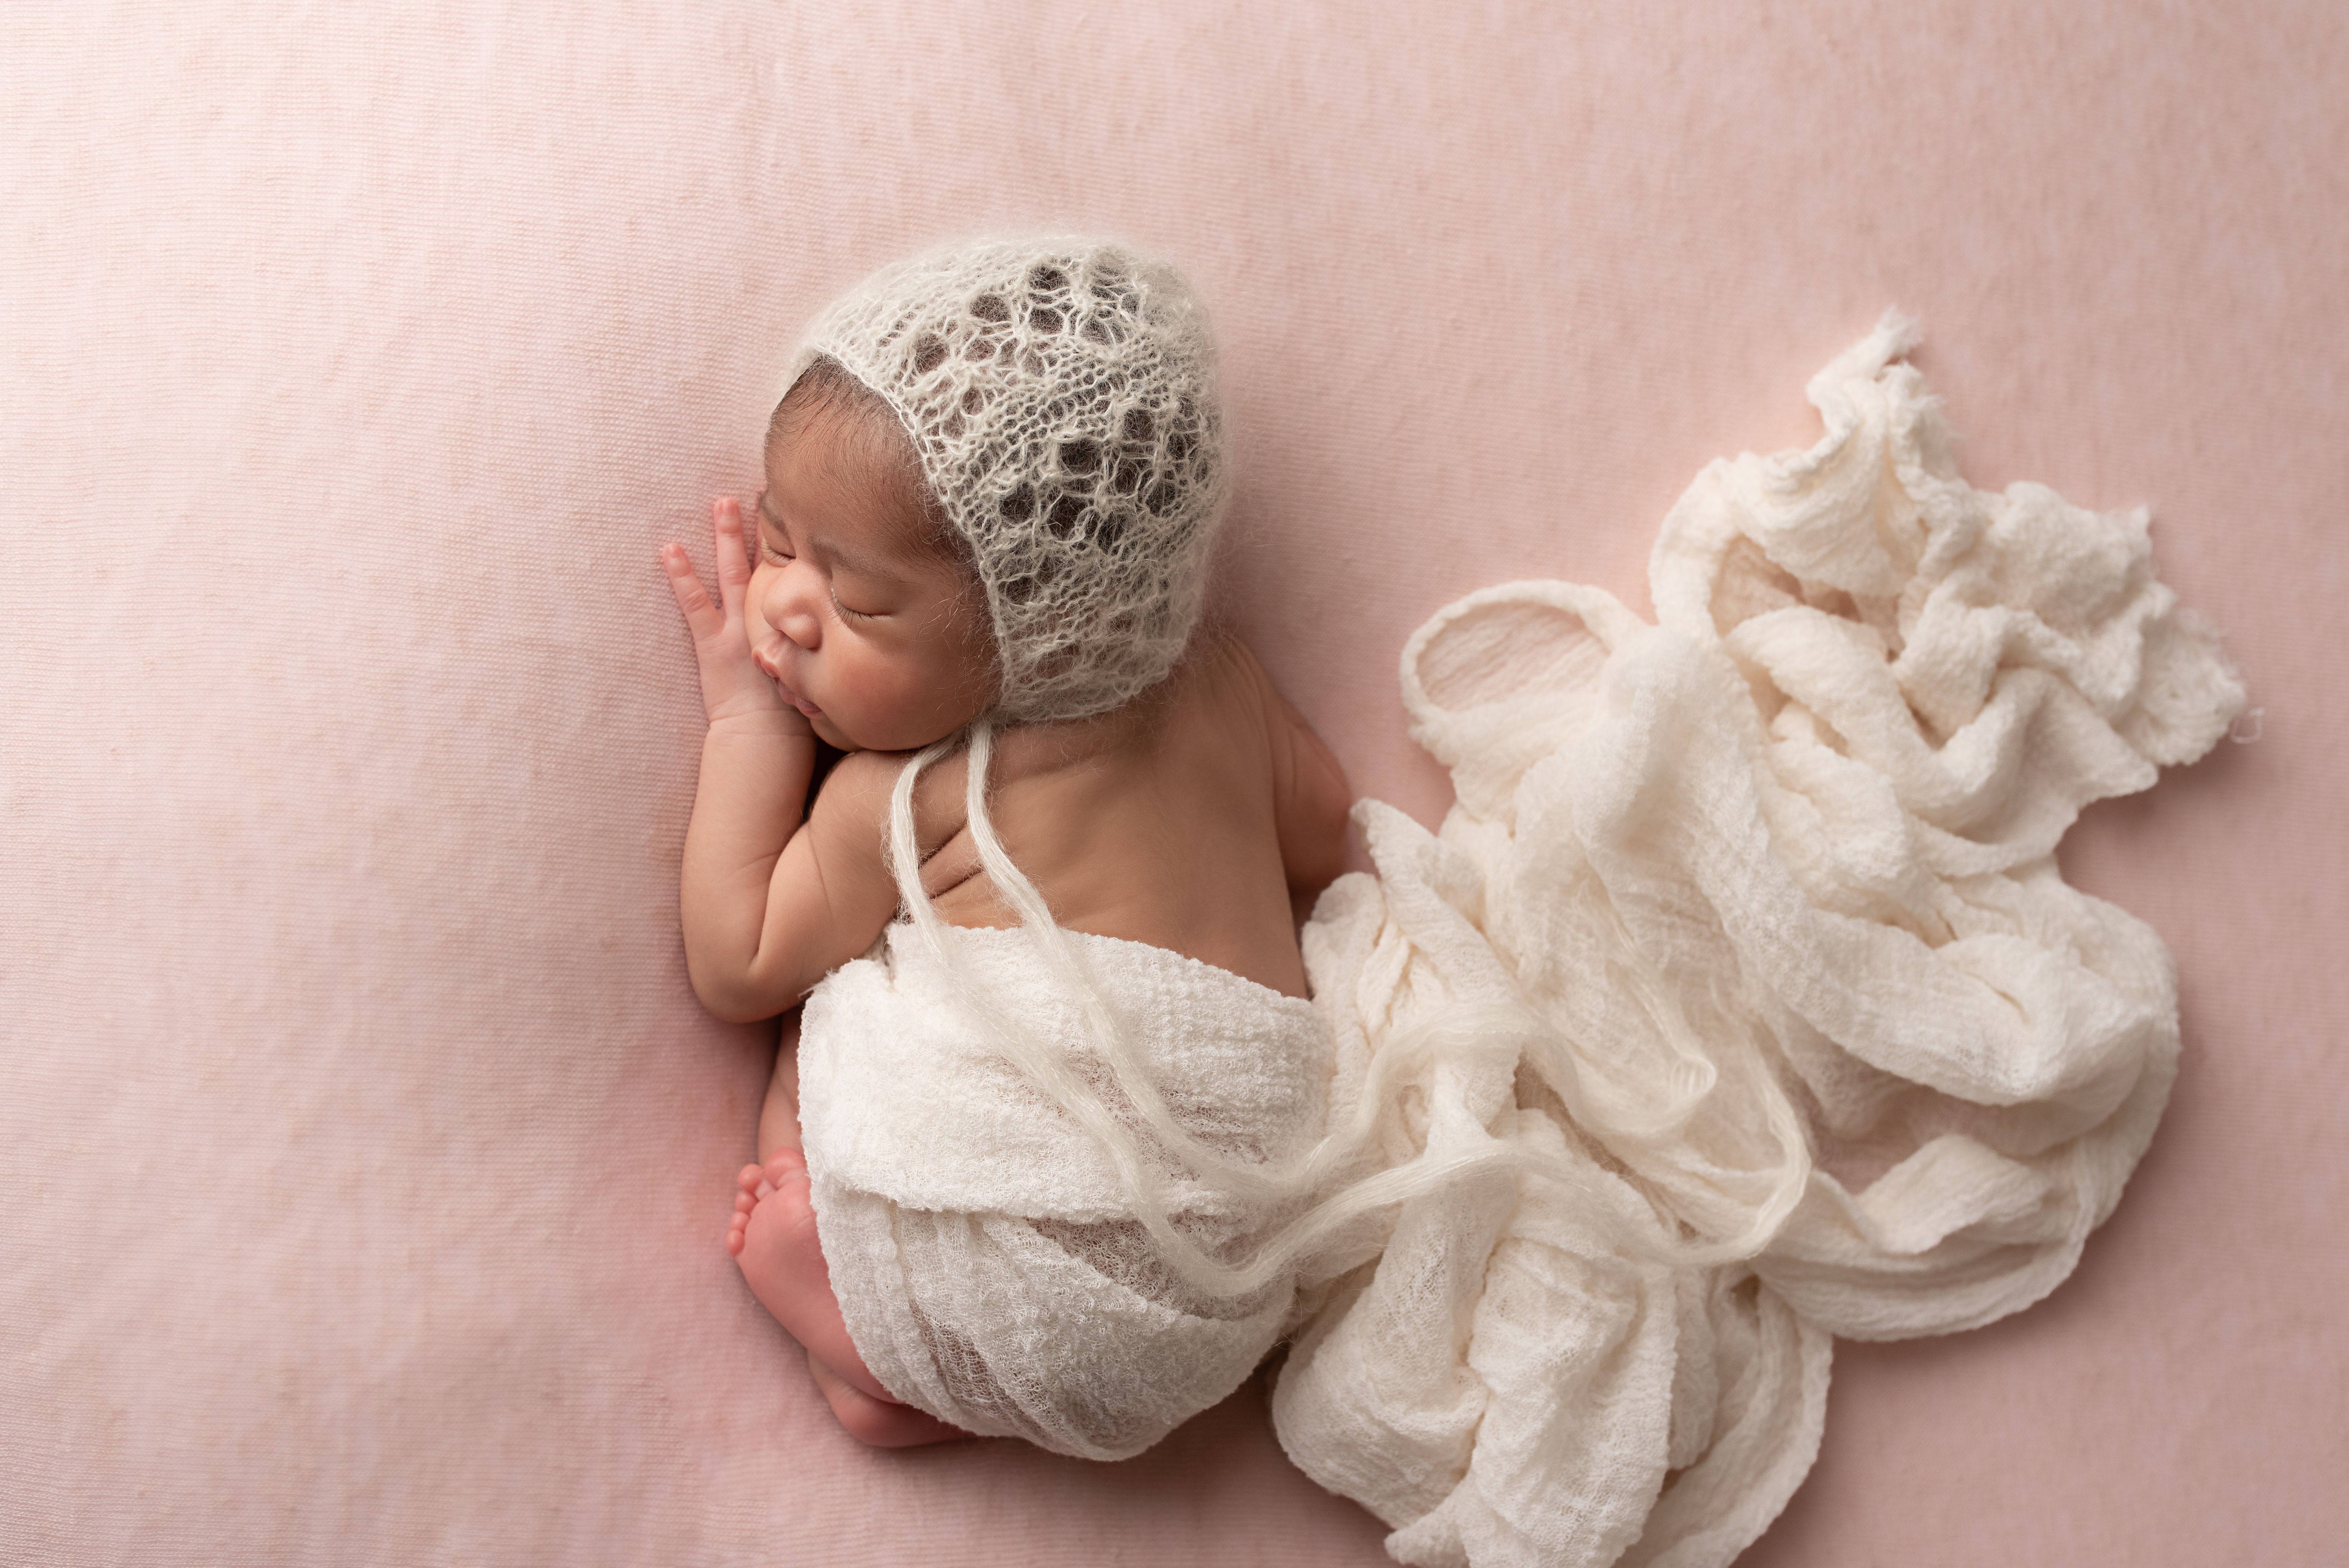 Newborn girl photographed on pink